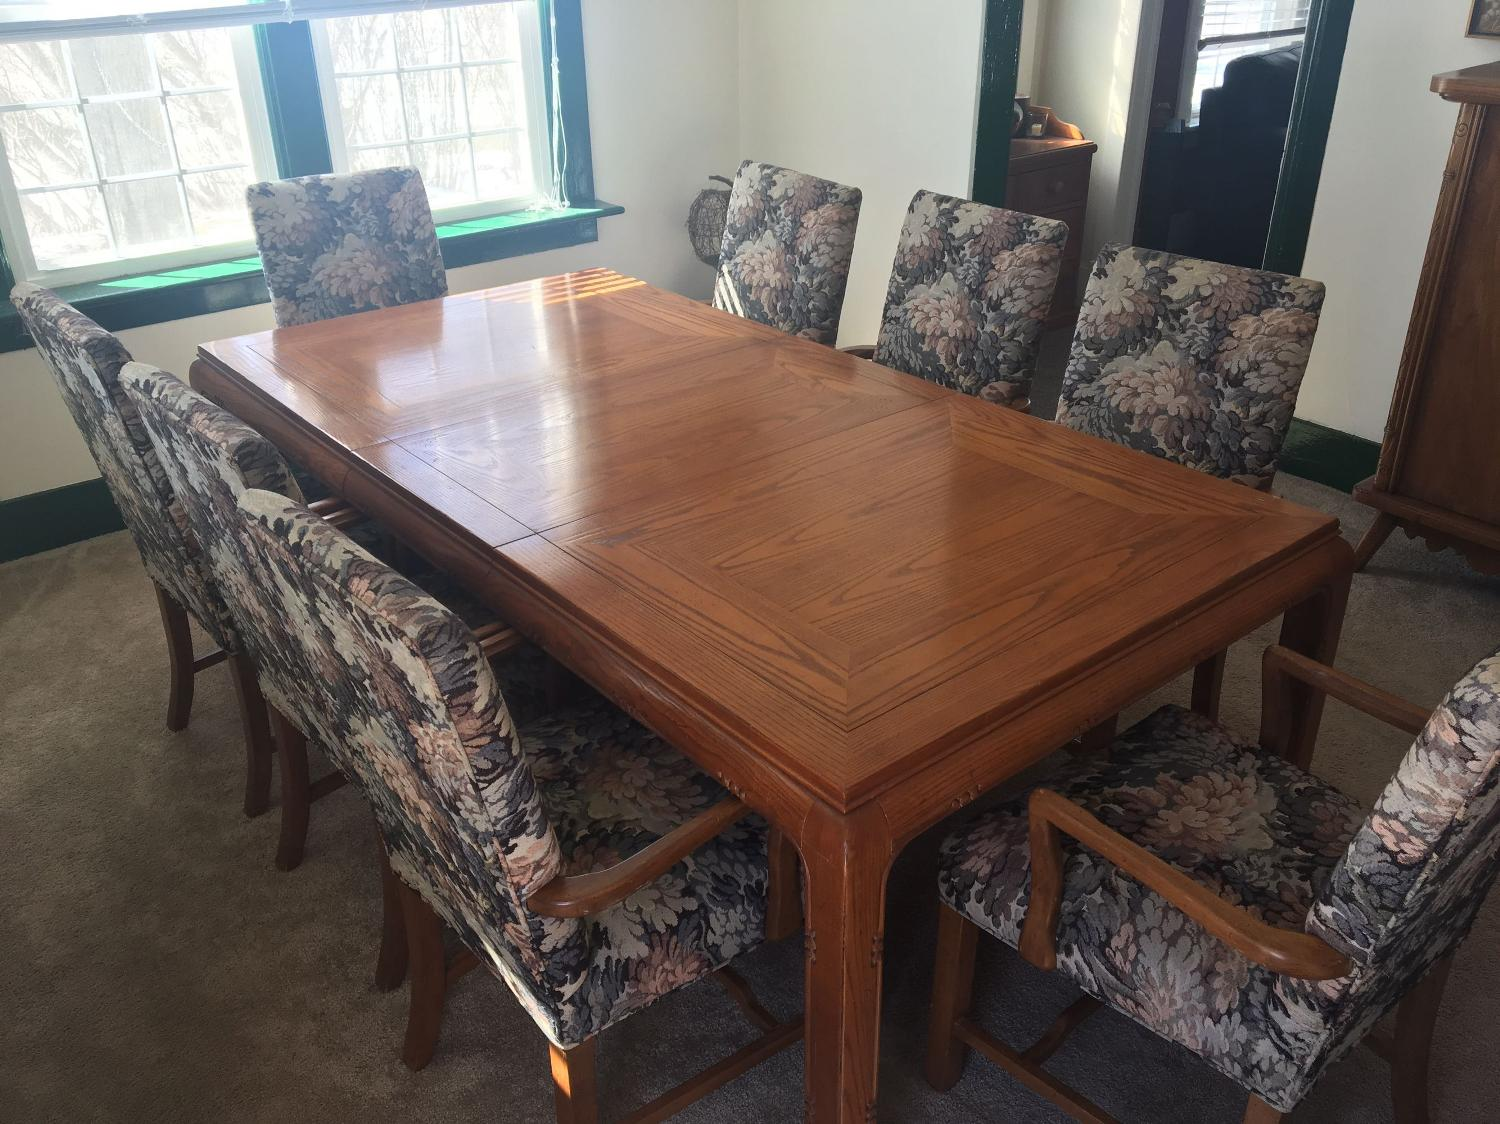 Dining room tables craigslist baton rouge furniture for Dining room tables craigslist